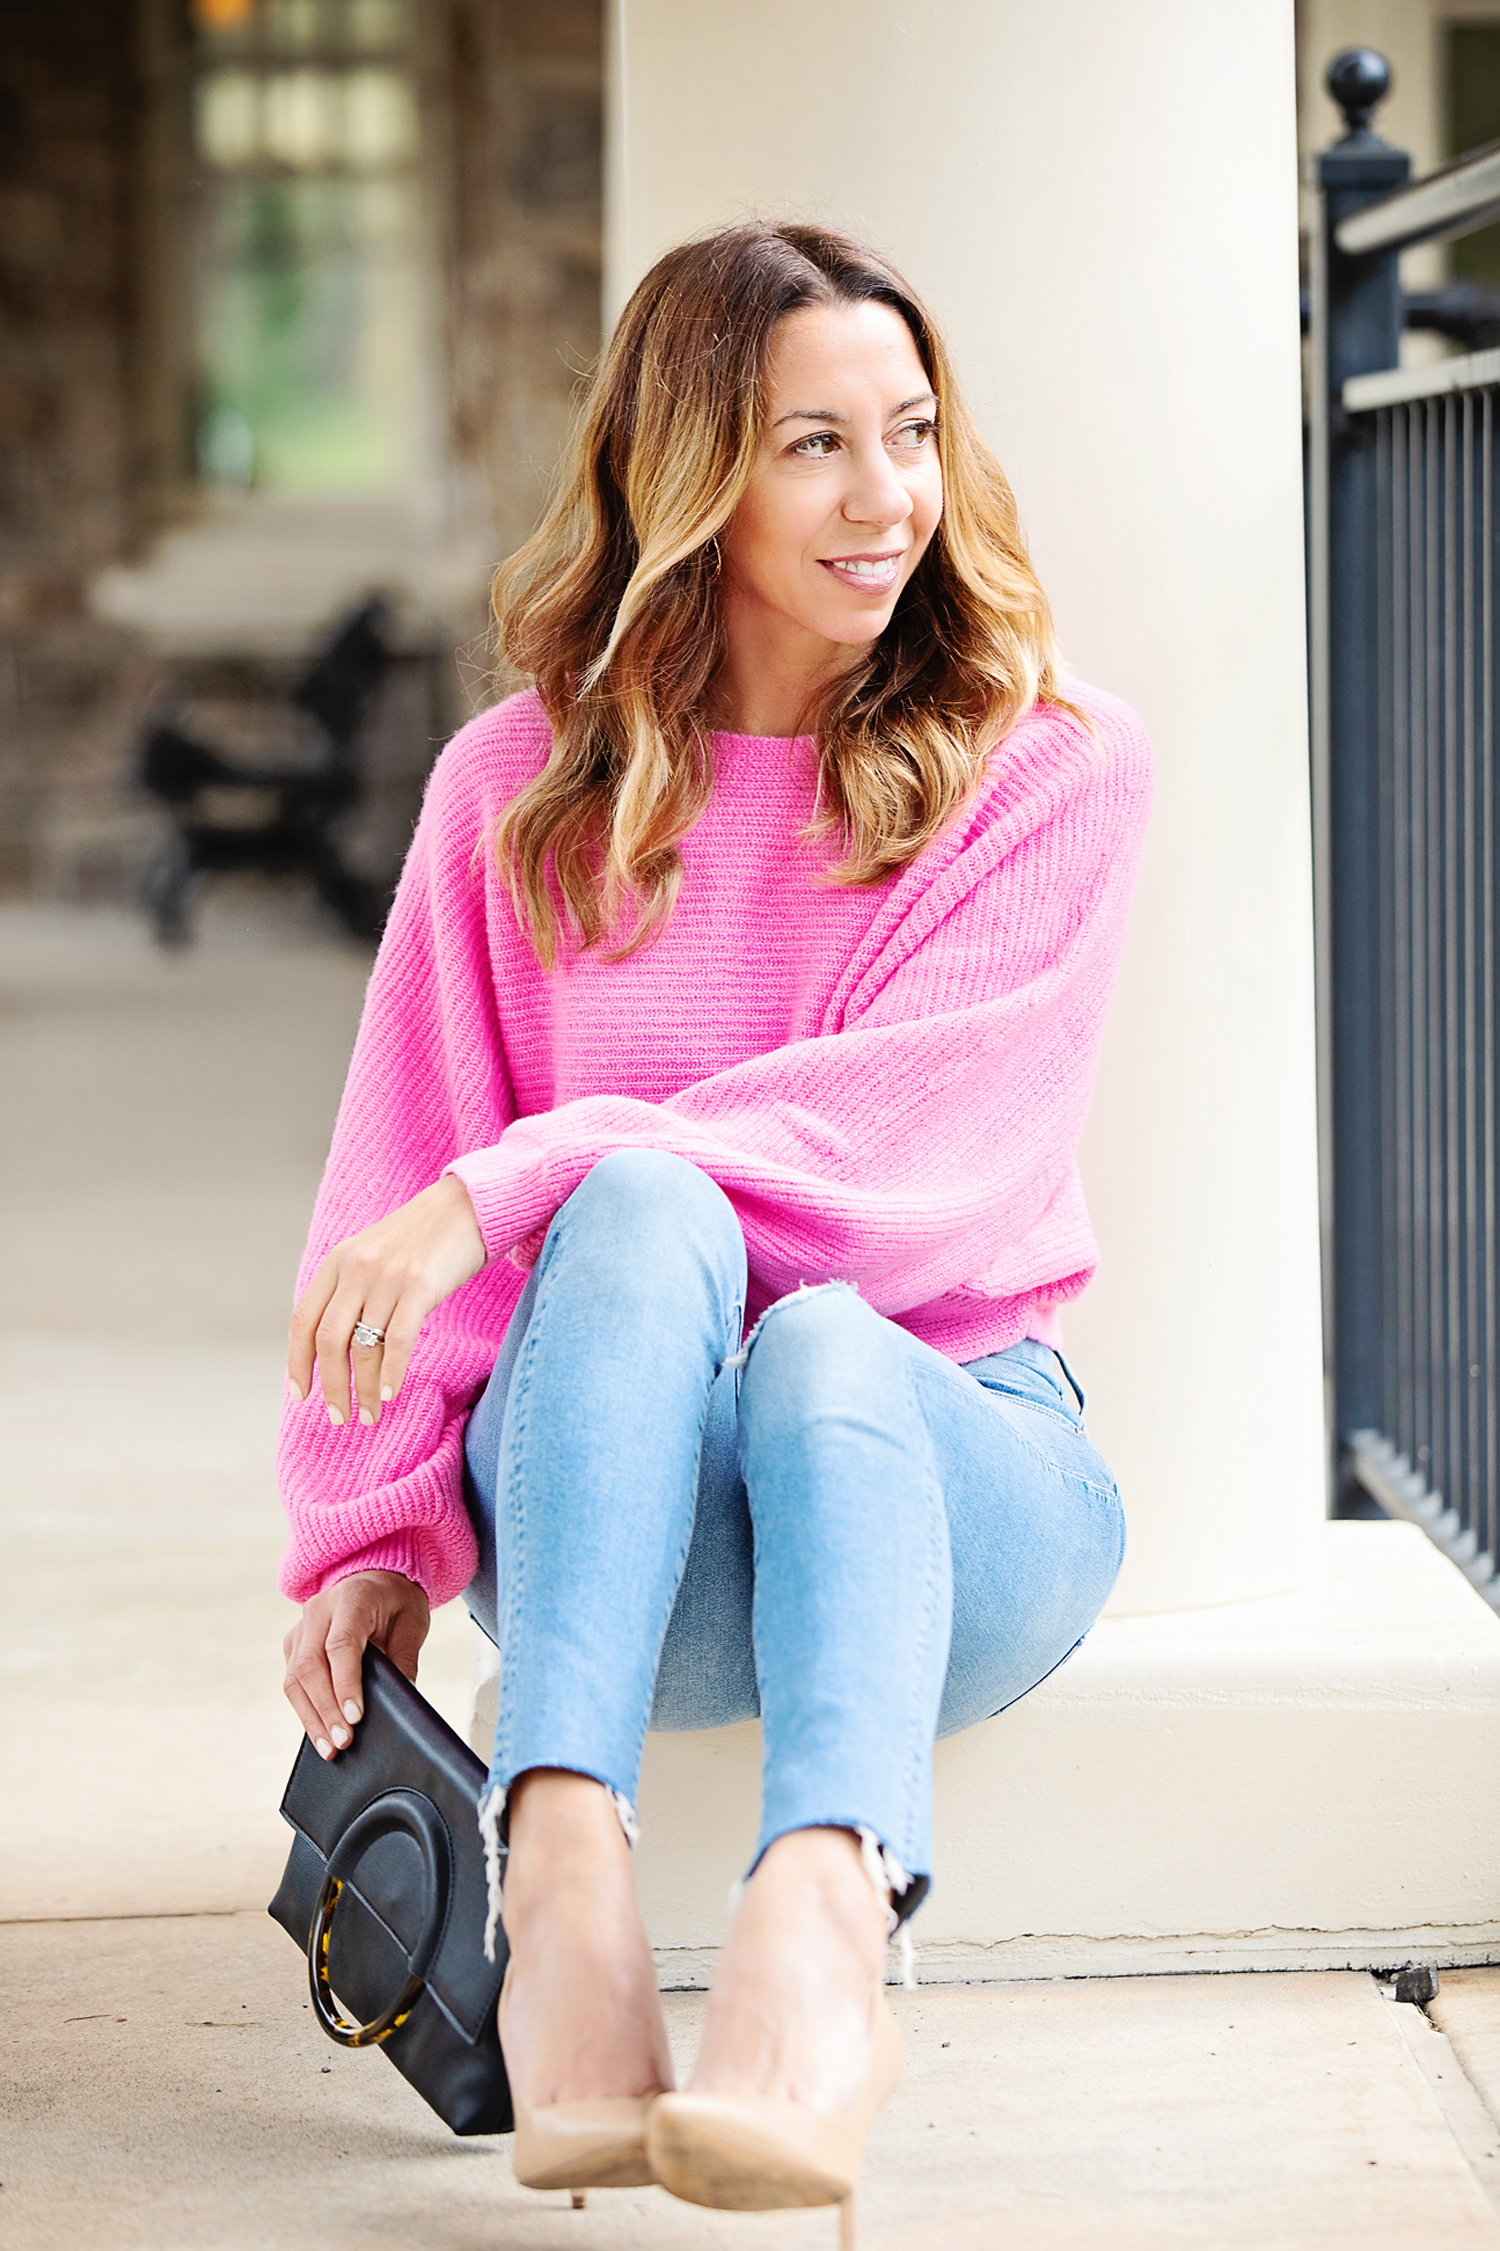 The Motherchic wearing date night sweaters from nordstrom